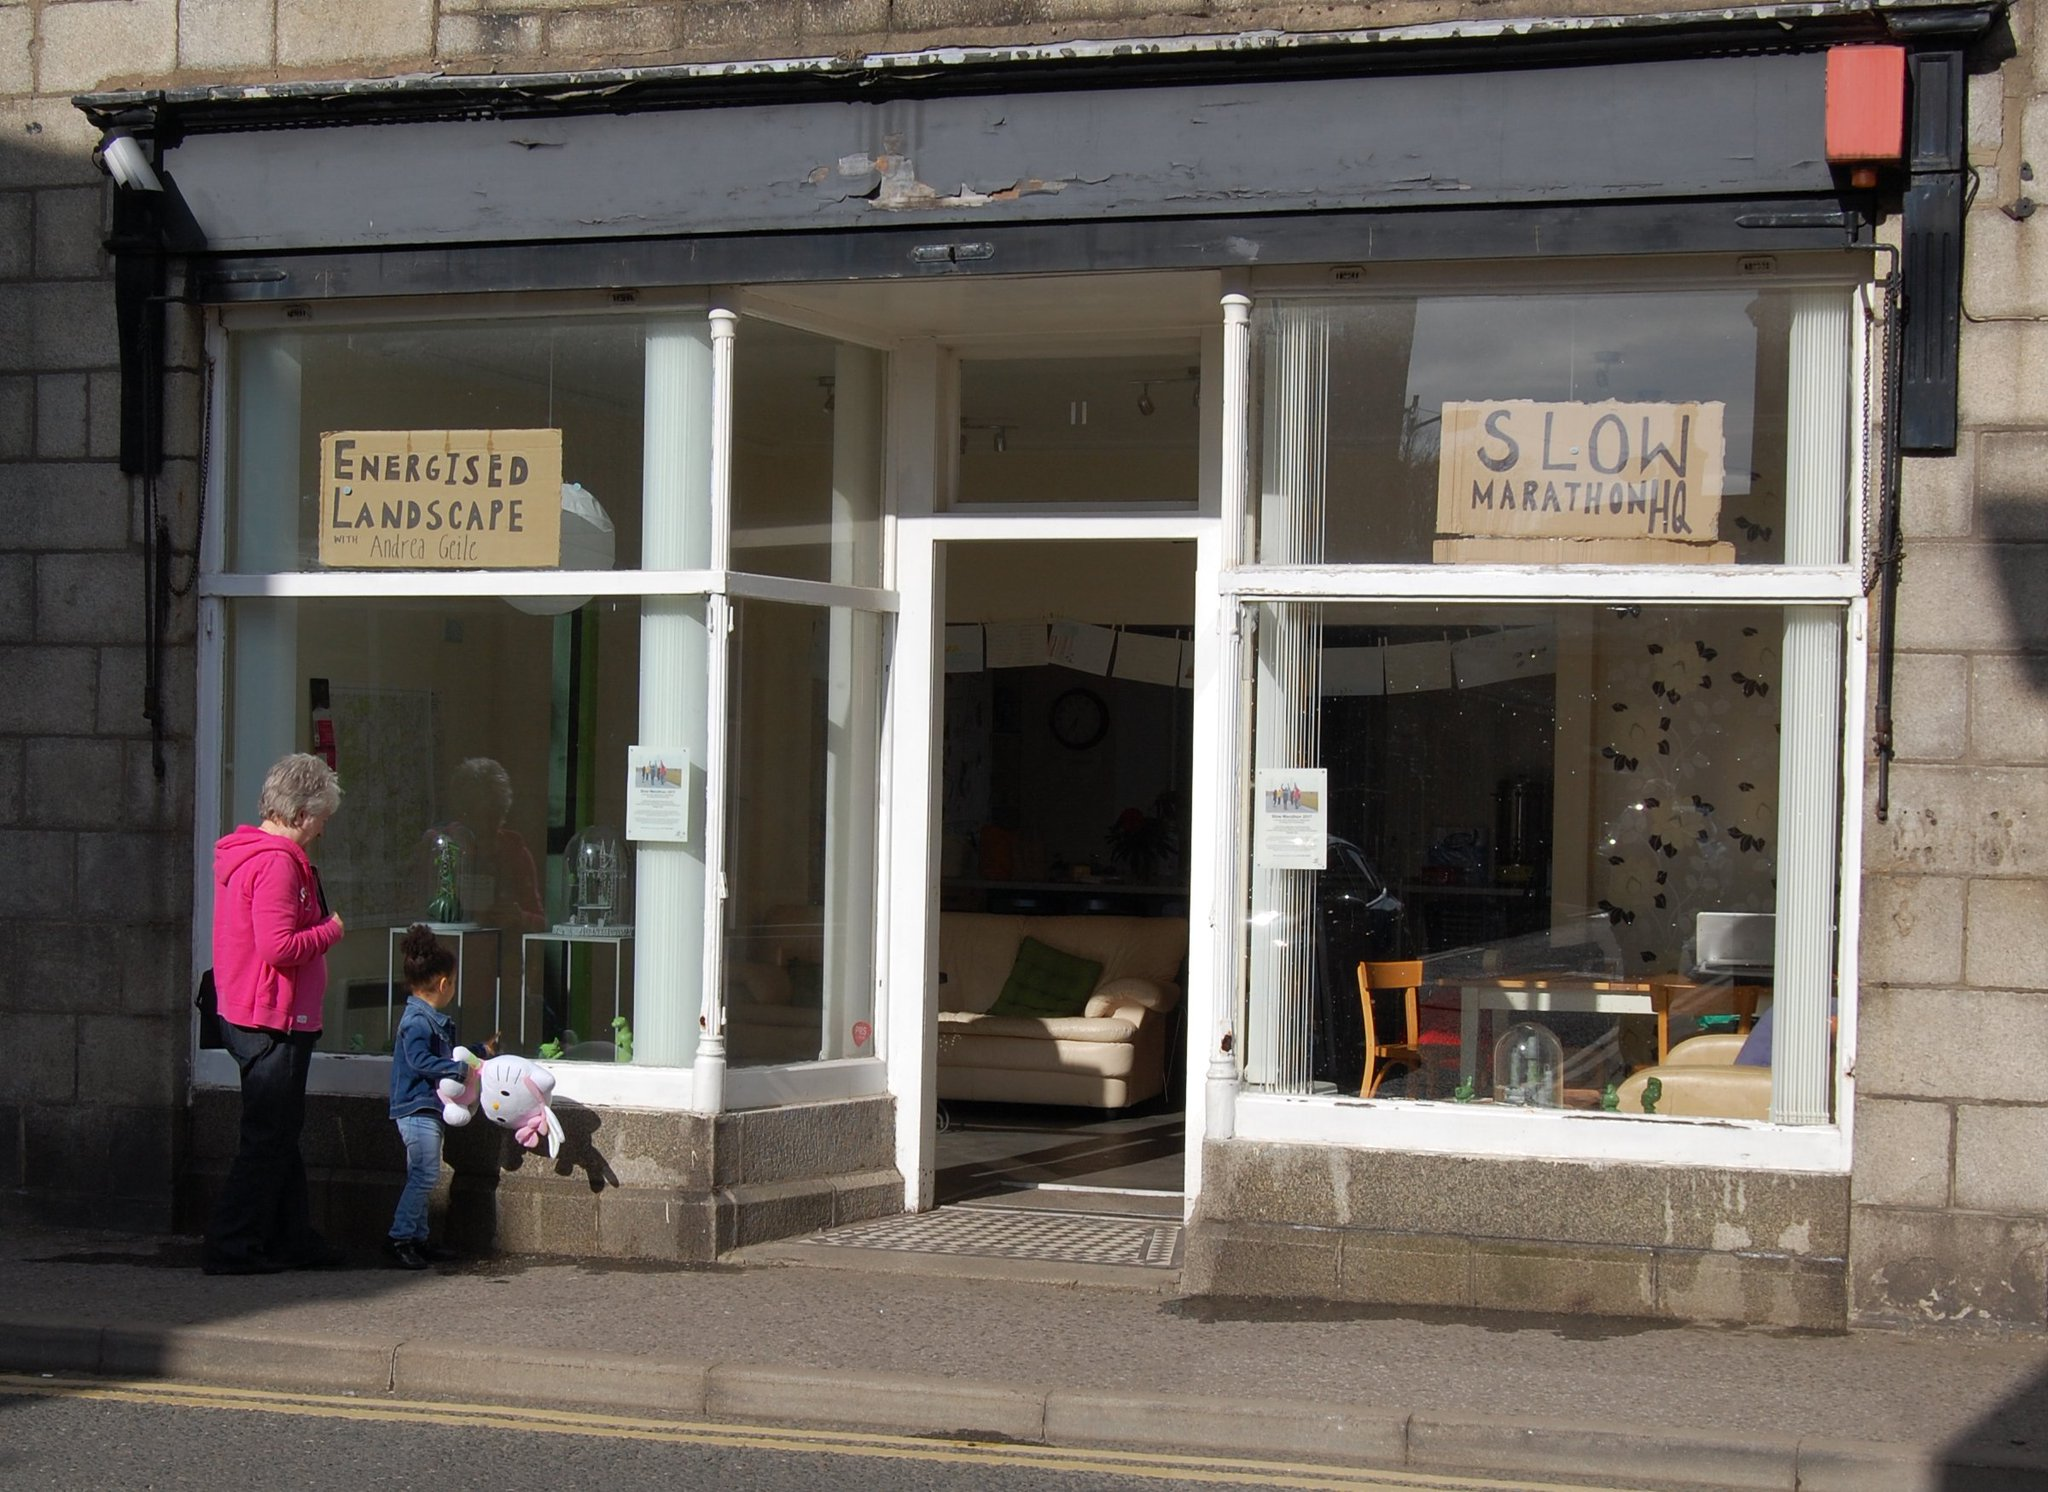 The 'Energised Landscape' pop-up gallery at No11 in Huntly is now open! @DeveronProjects #Scotland #energy #renewable #art #Aberdeenshire https://t.co/BA4wpBeZiT